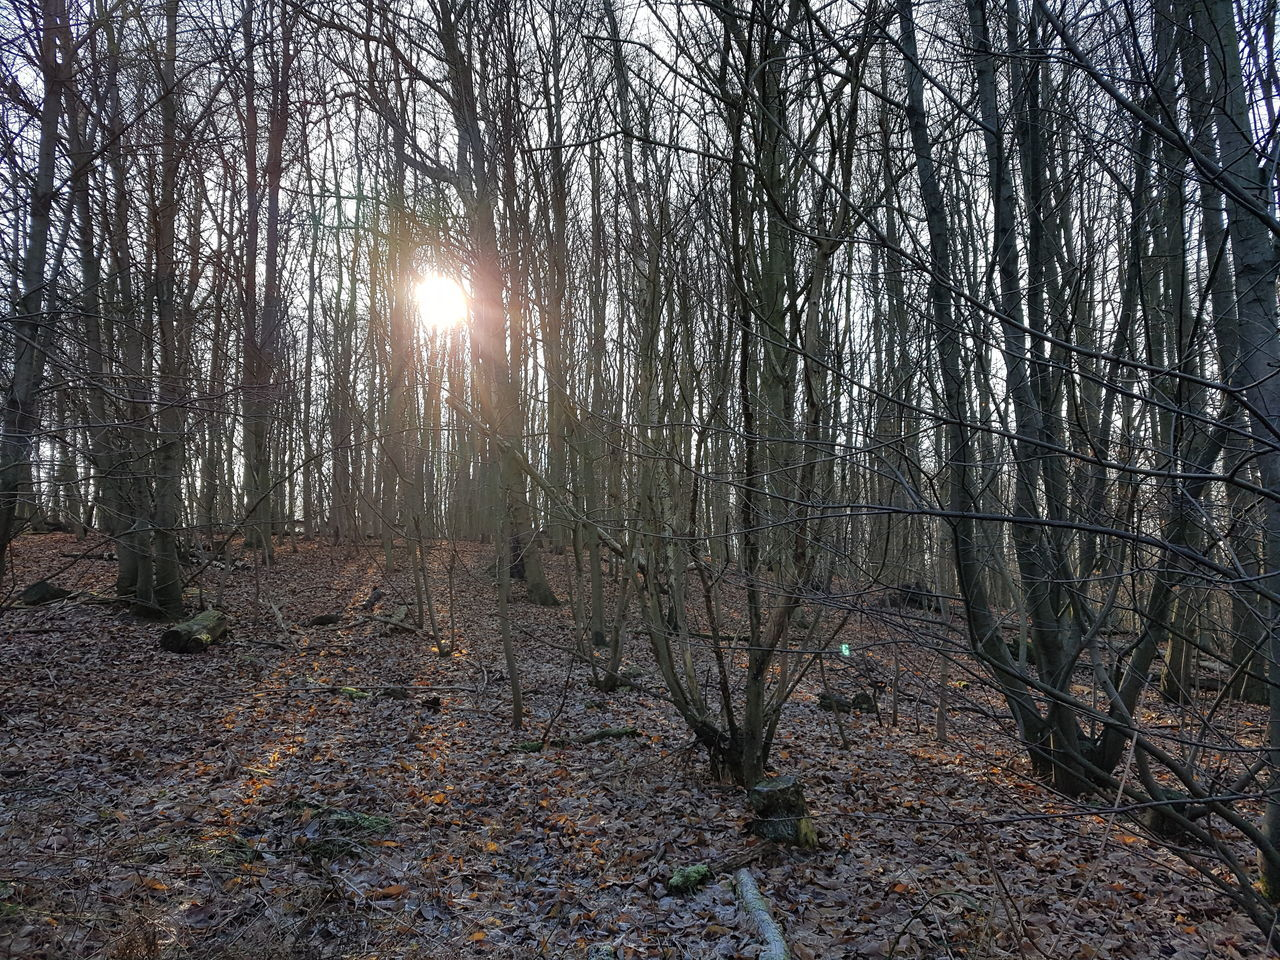 forest, tree, nature, tranquility, sun, beauty in nature, lens flare, tree trunk, tranquil scene, outdoors, scenics, branch, no people, day, sunlight, bare tree, autumn, sky